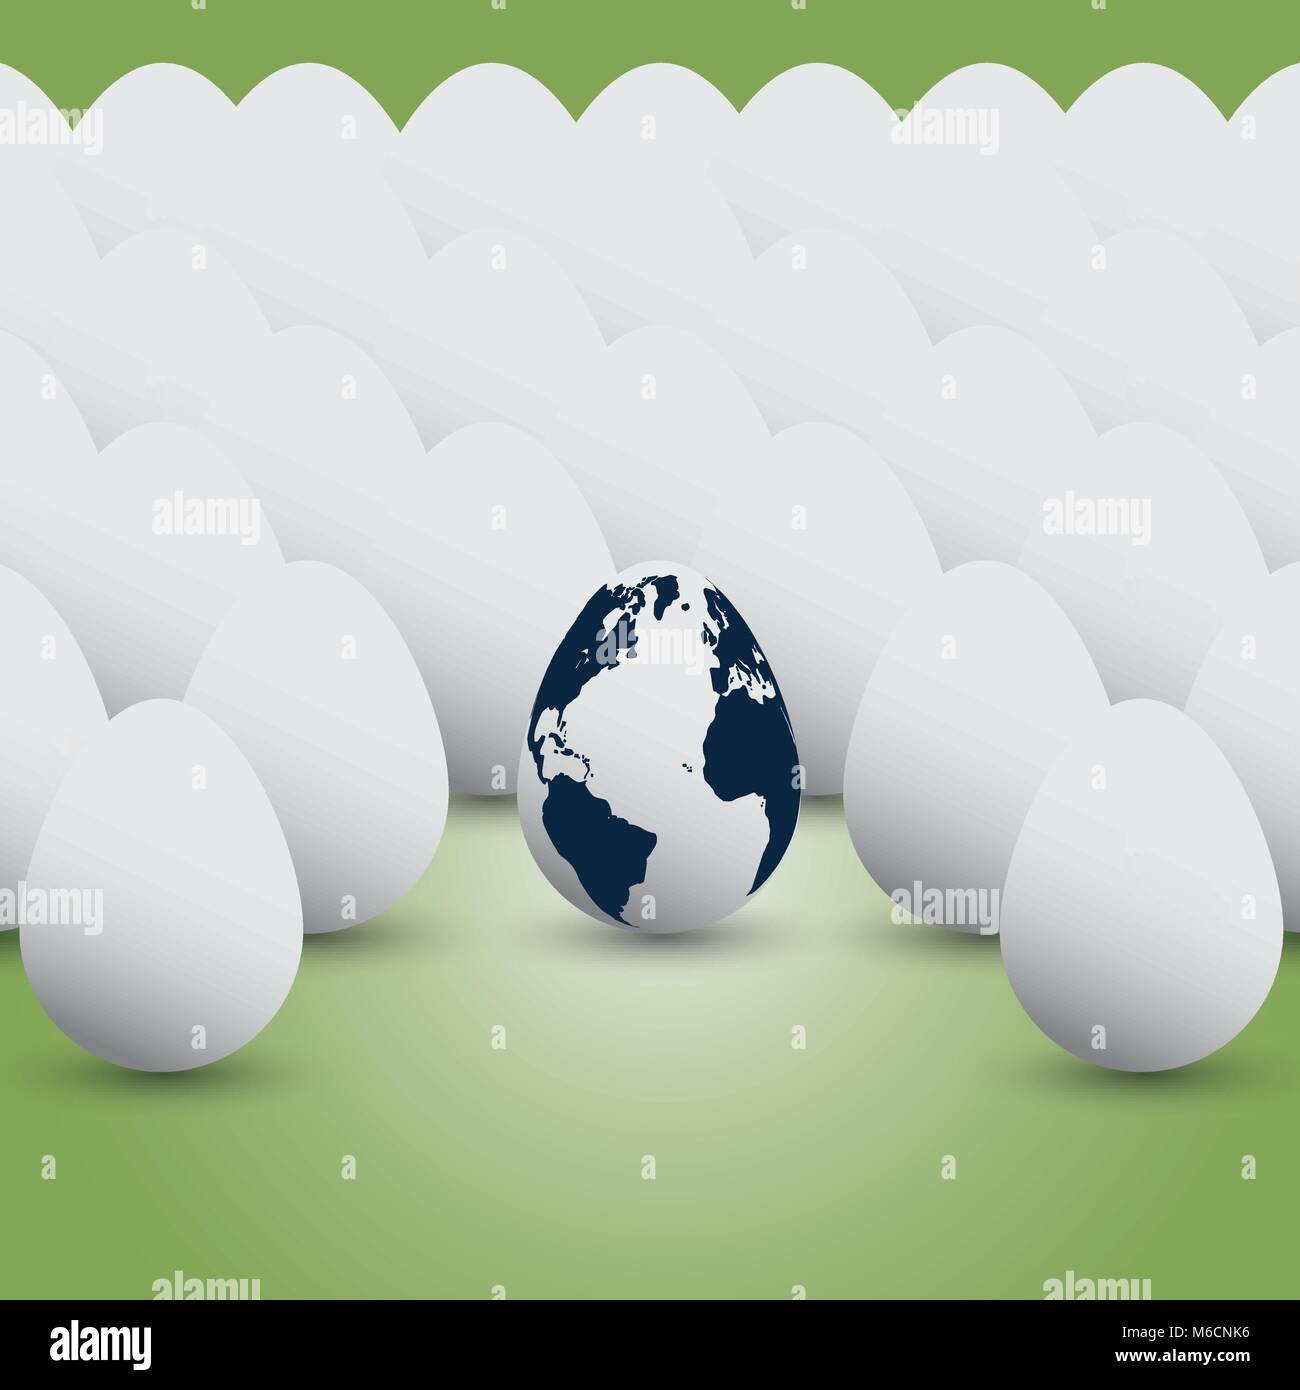 Earth Concept - Our Planet Like a Fragile Egg - Freely Scalable and Editable Vector Format Included - Stock Vector